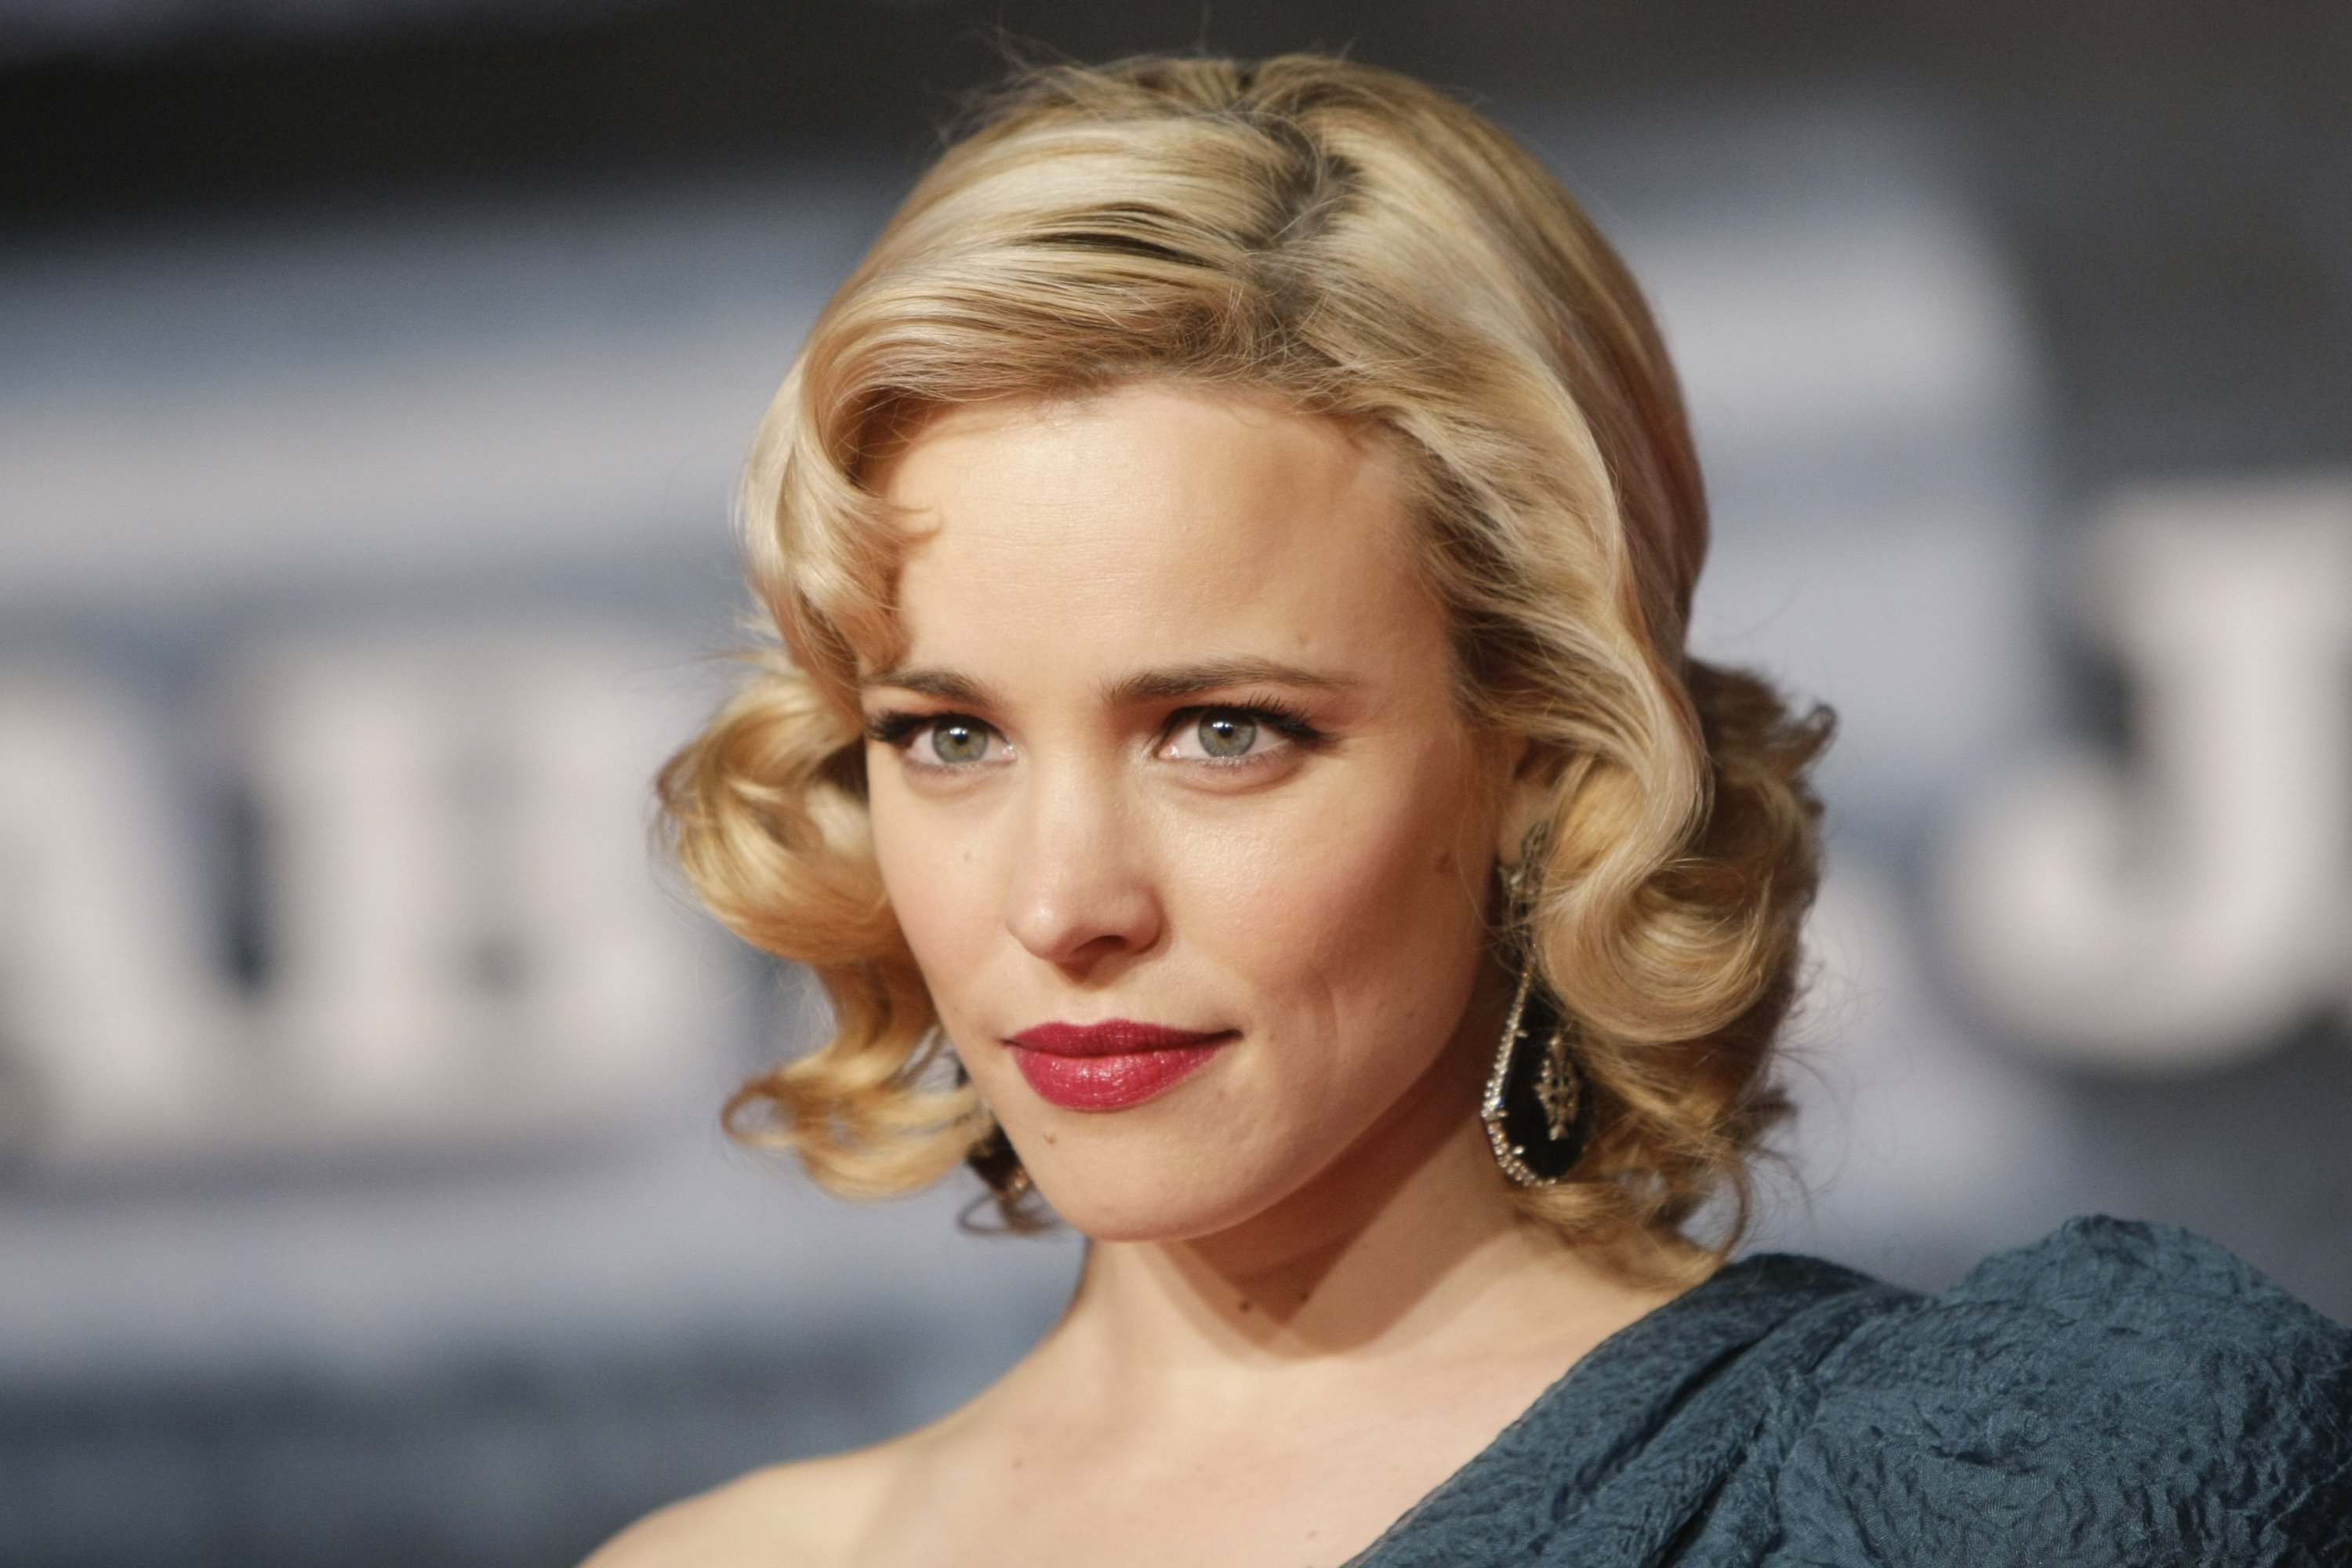 rachel mcadams hd wallpapers